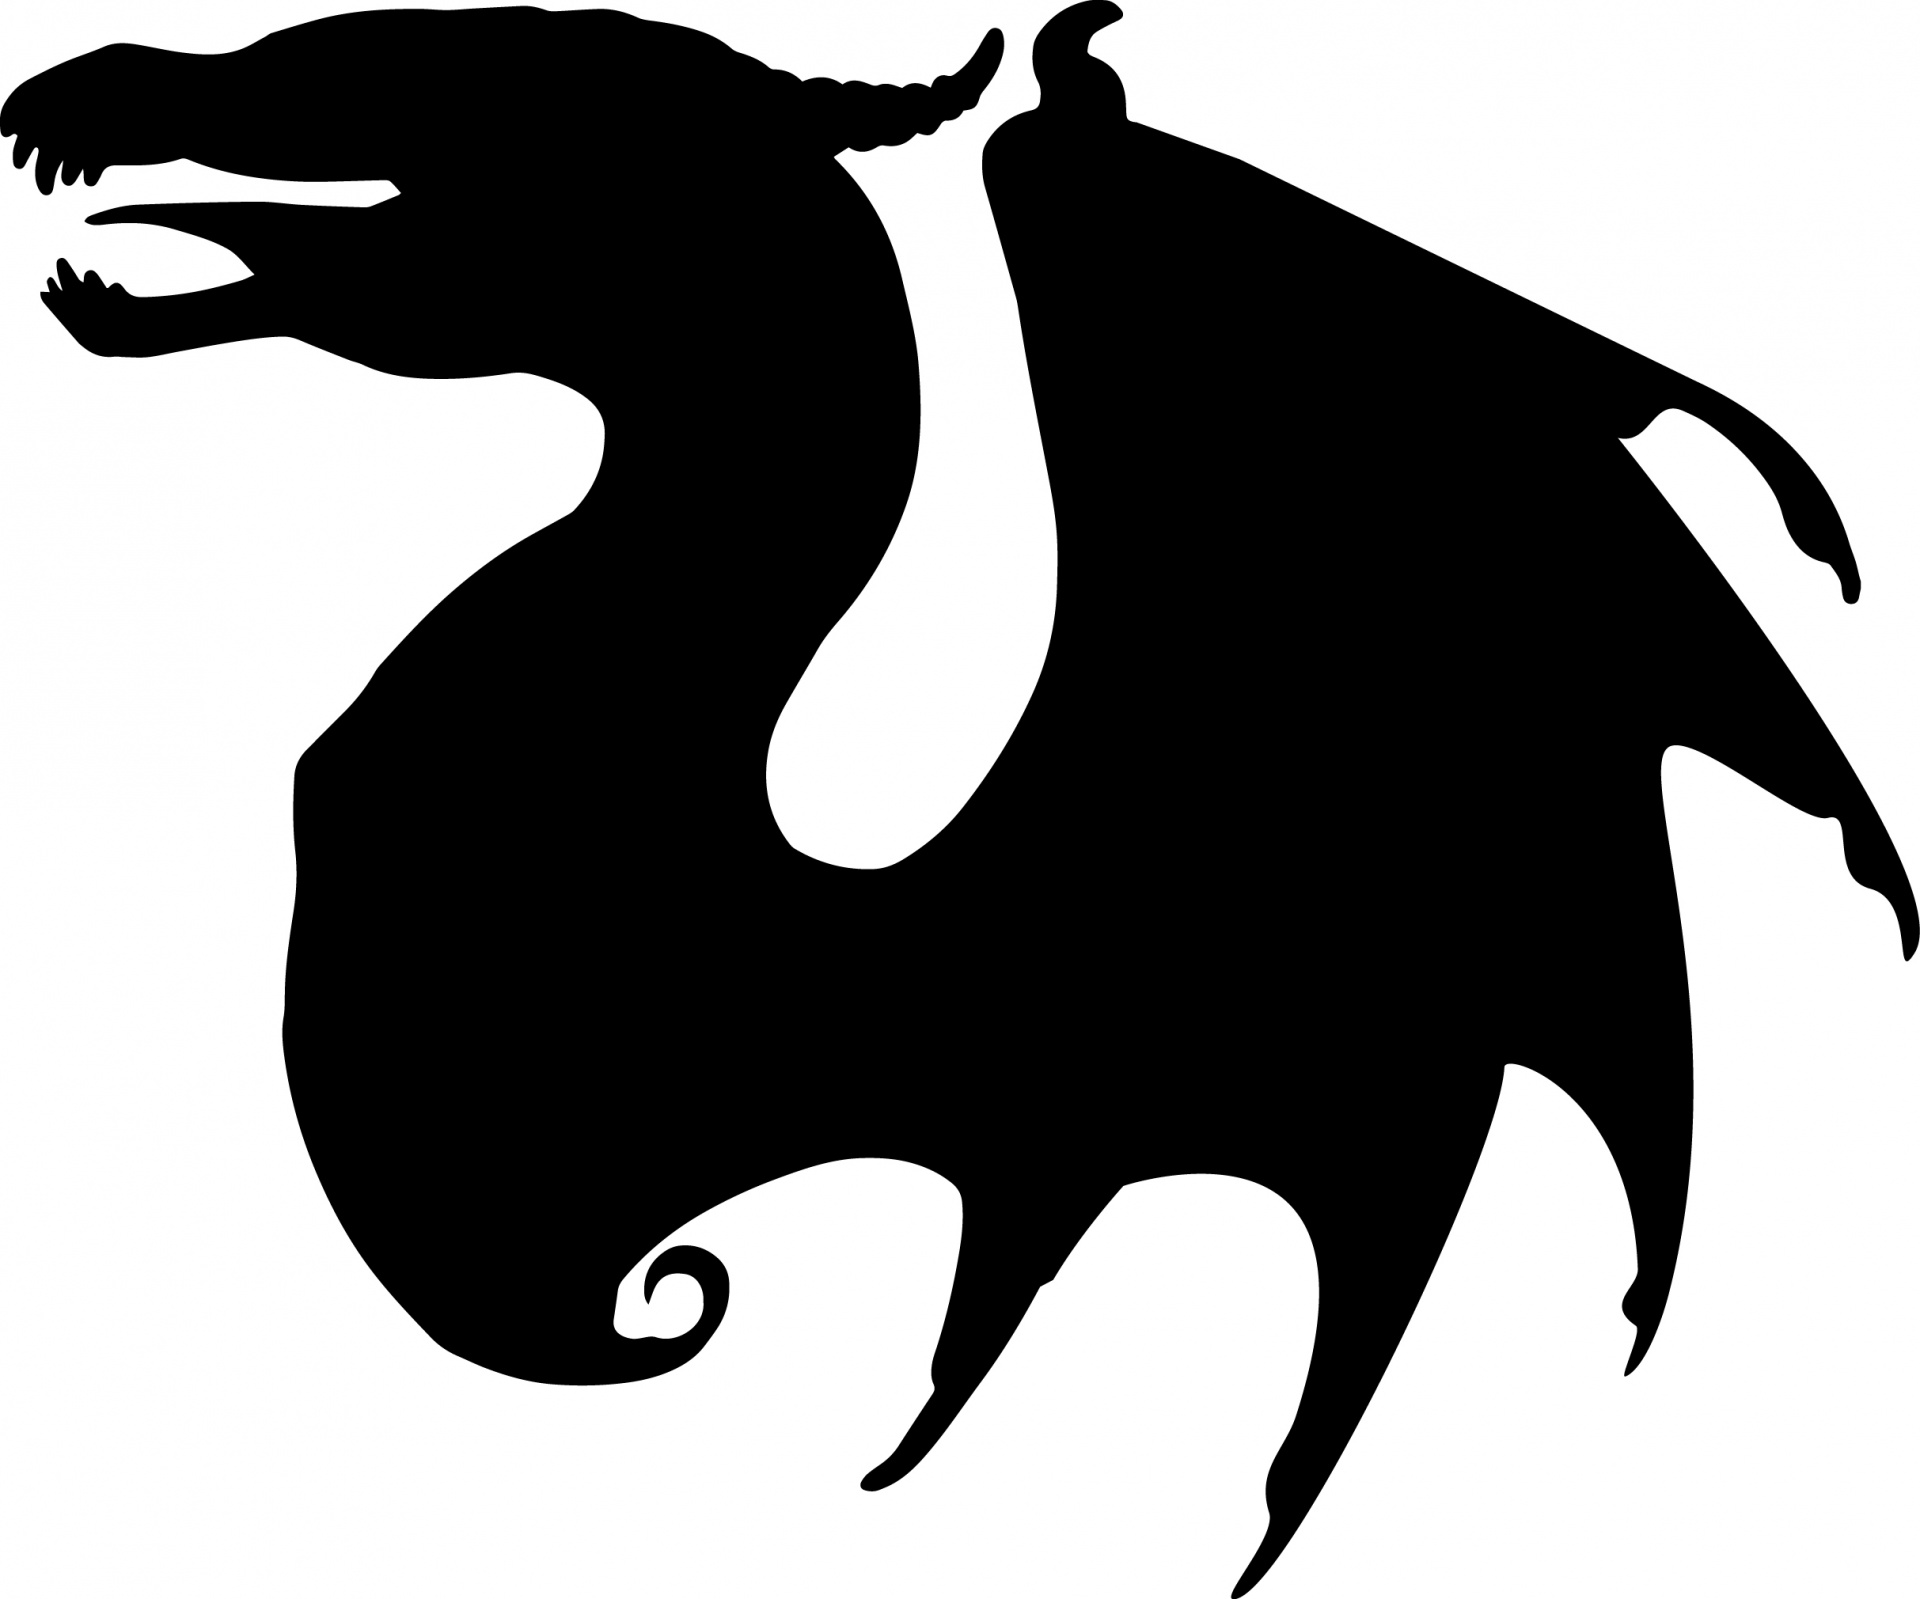 1920x1599 Dragon Silhouette Drawing Free Stock Photo